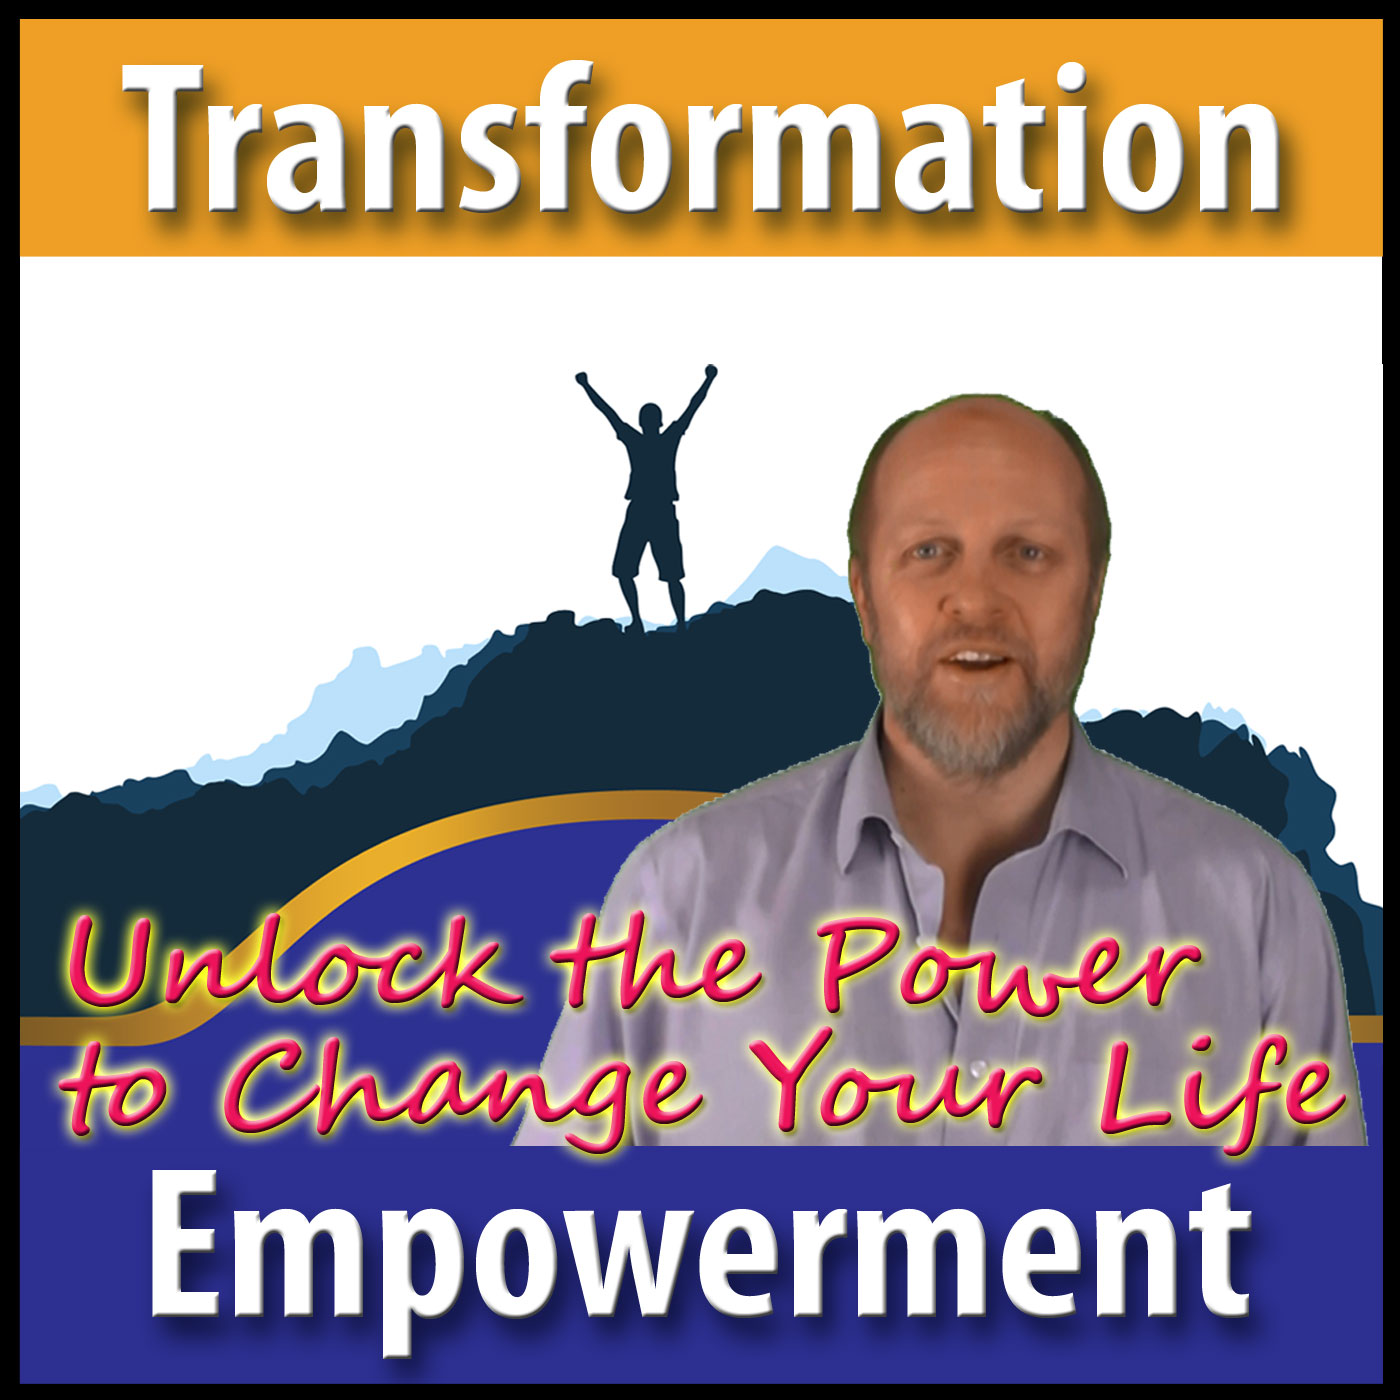 Transformation and Empowerment by Mike Pettigrew